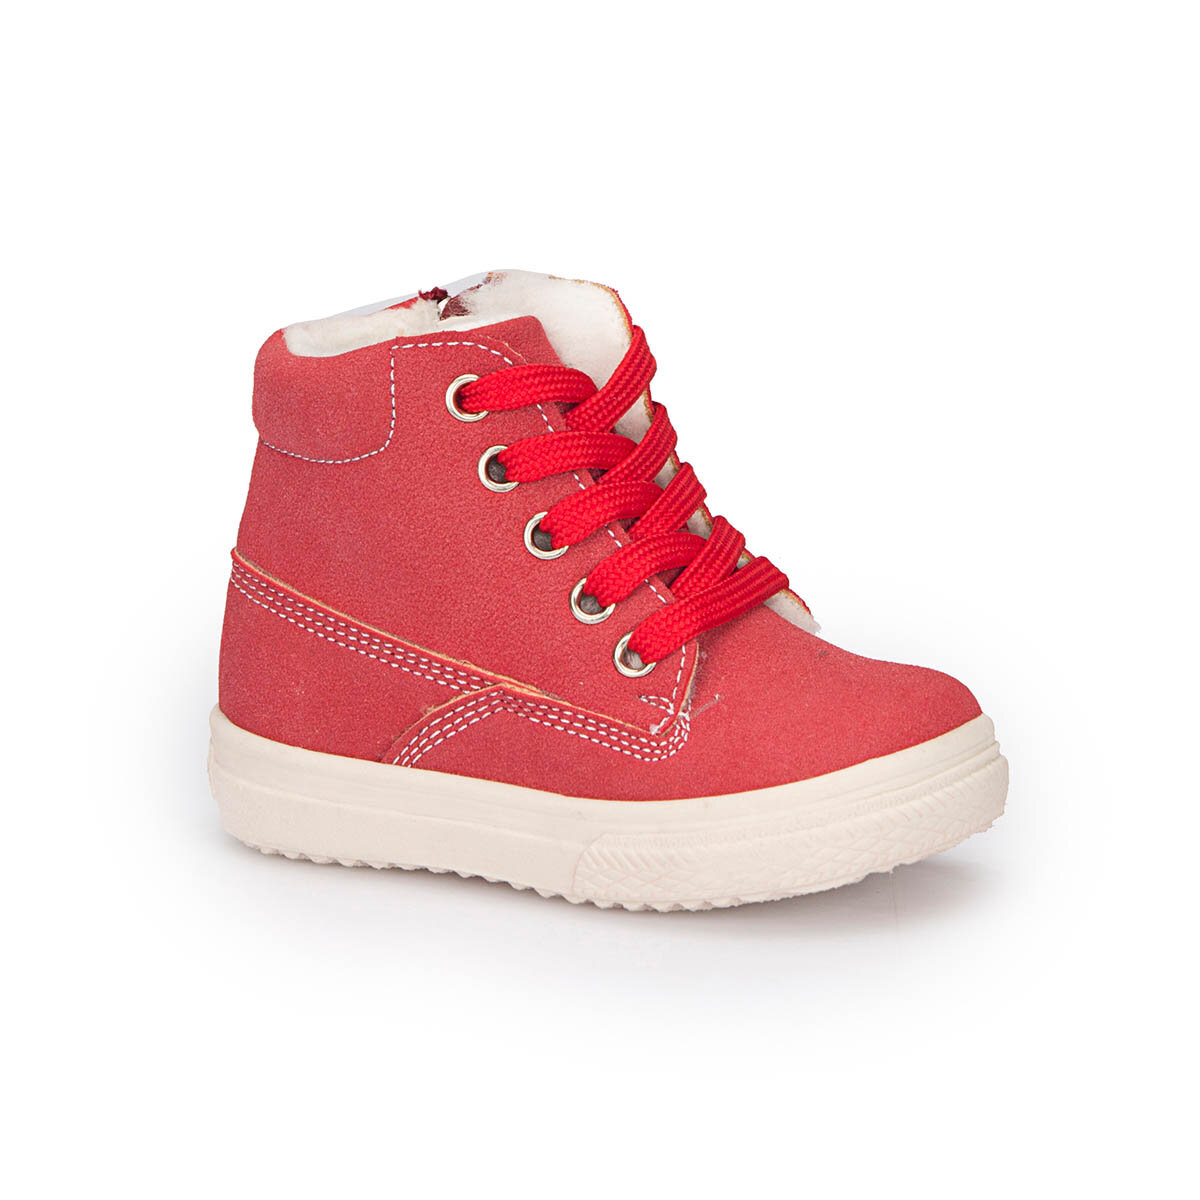 FLO 72.509523.B Red Female Child Sneaker Shoes Polaris